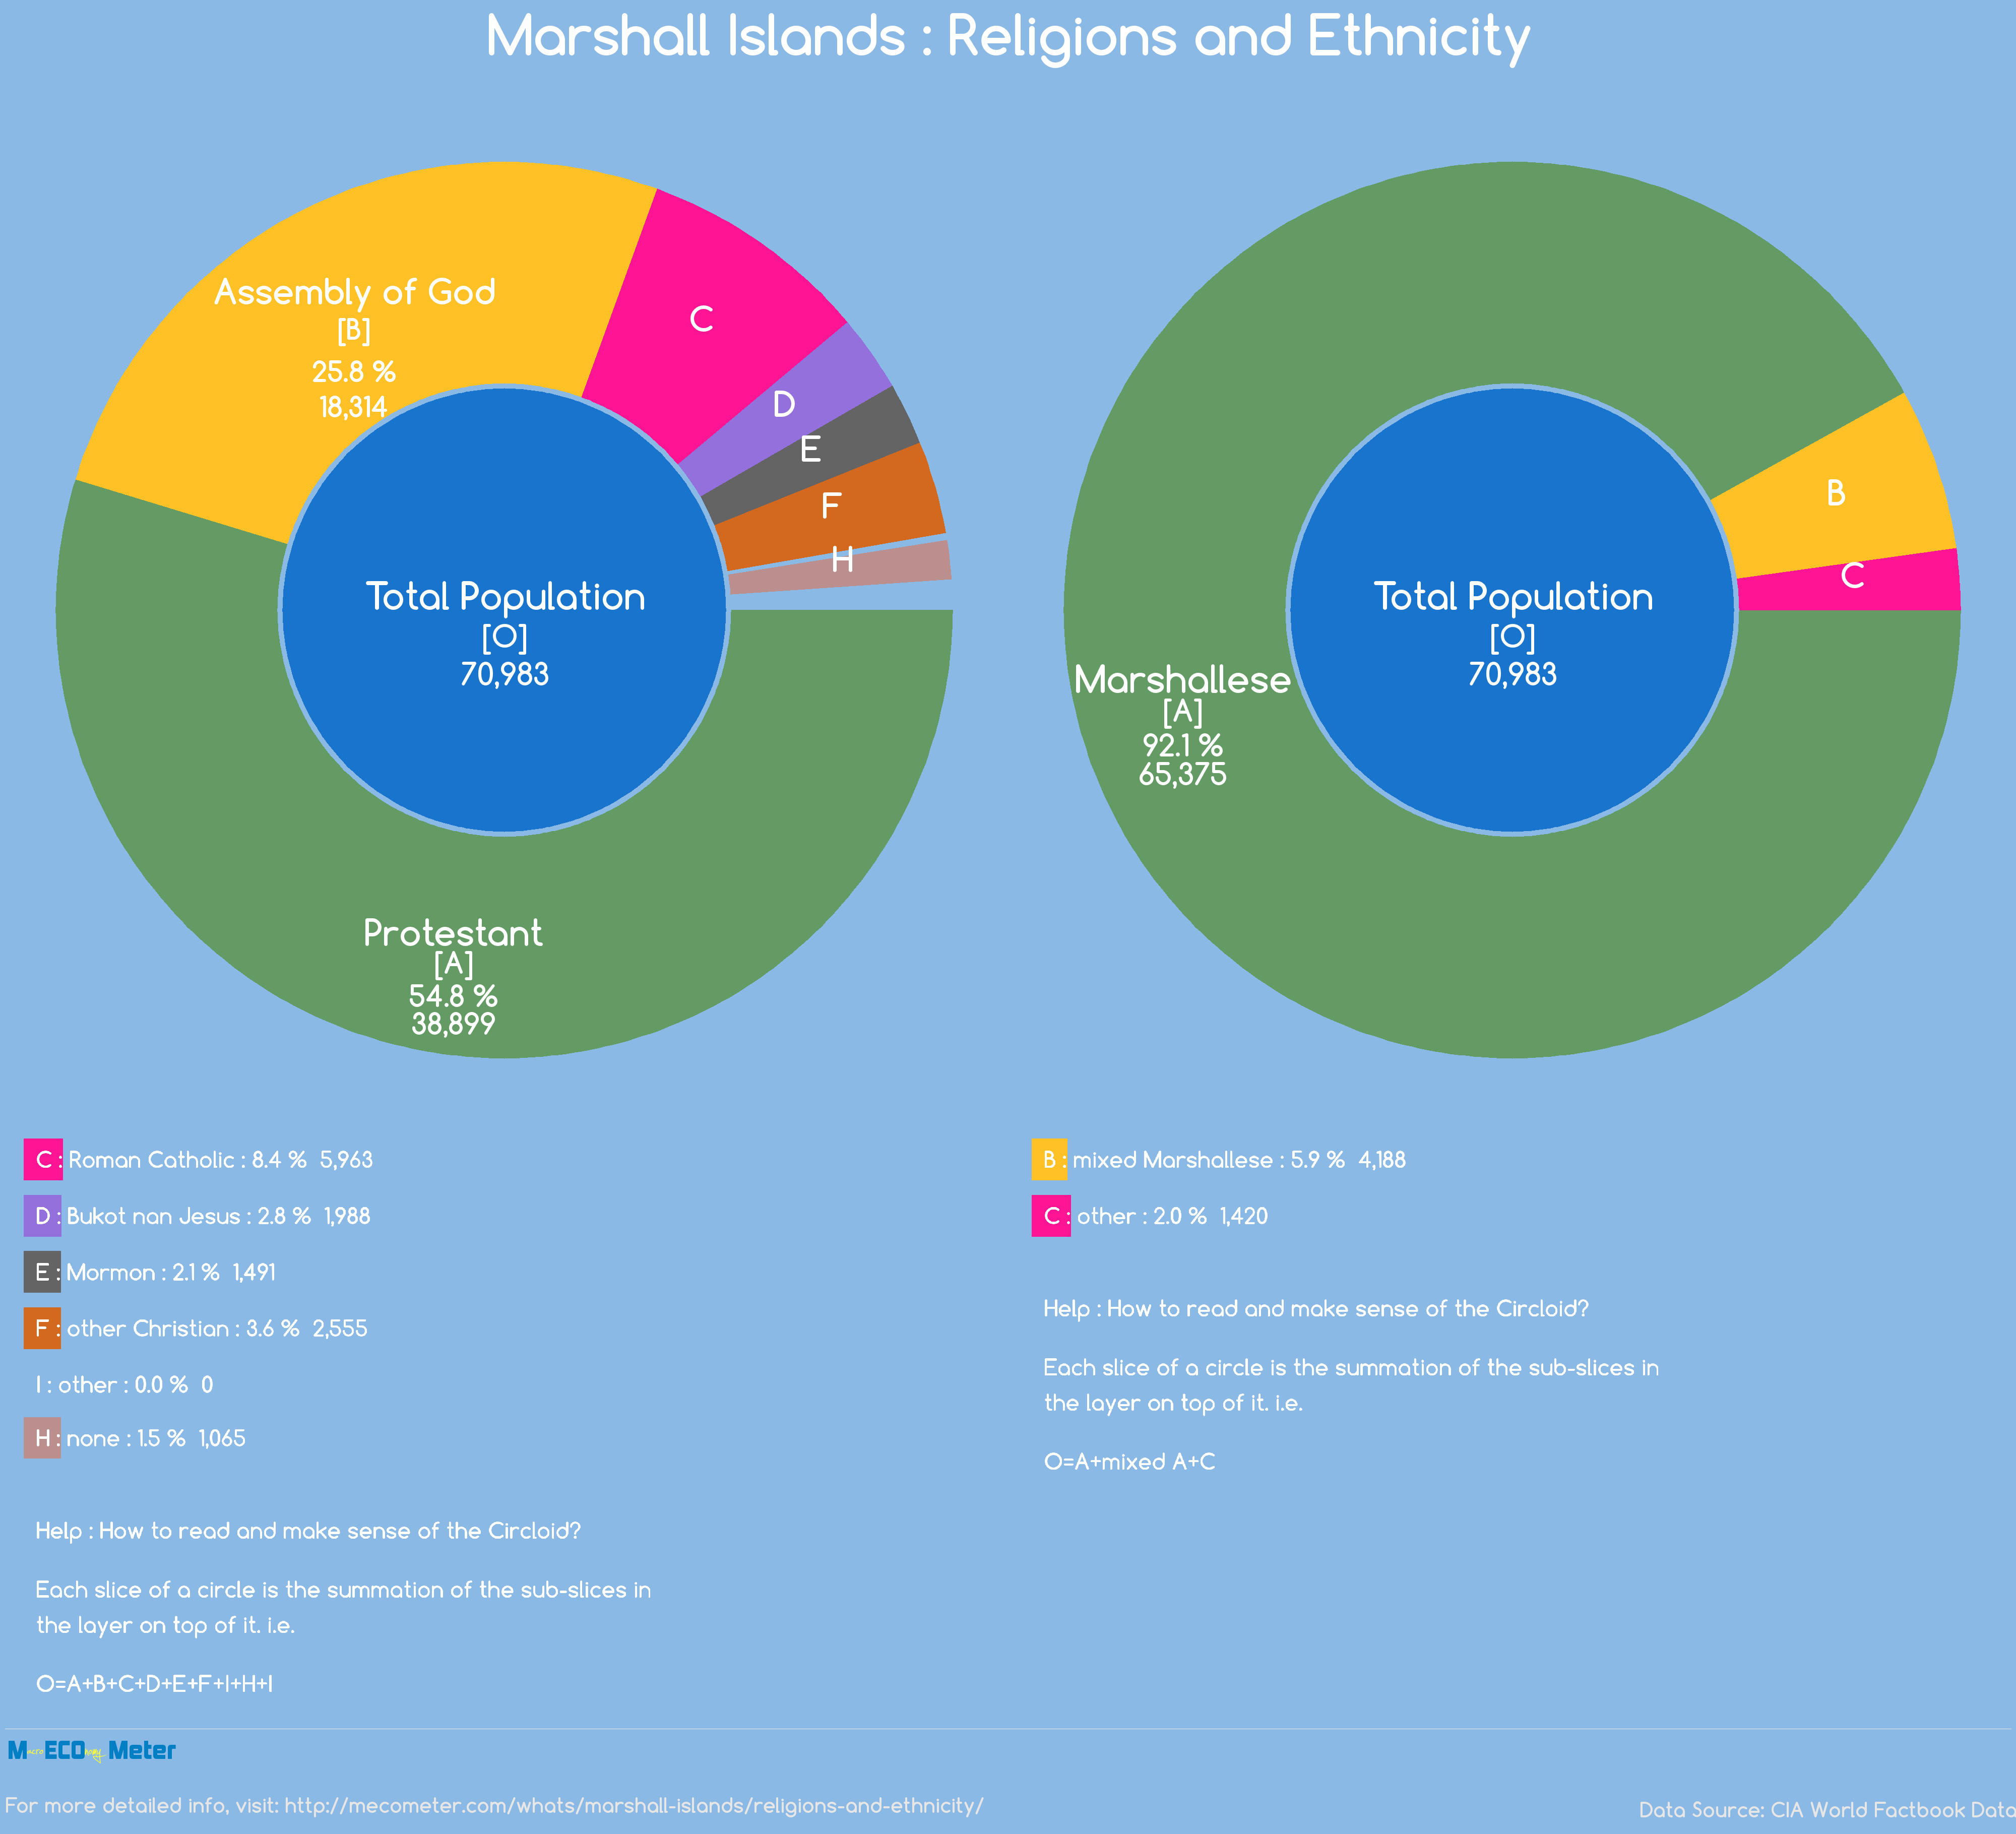 Marshall Islands : Religions and Ethnicity